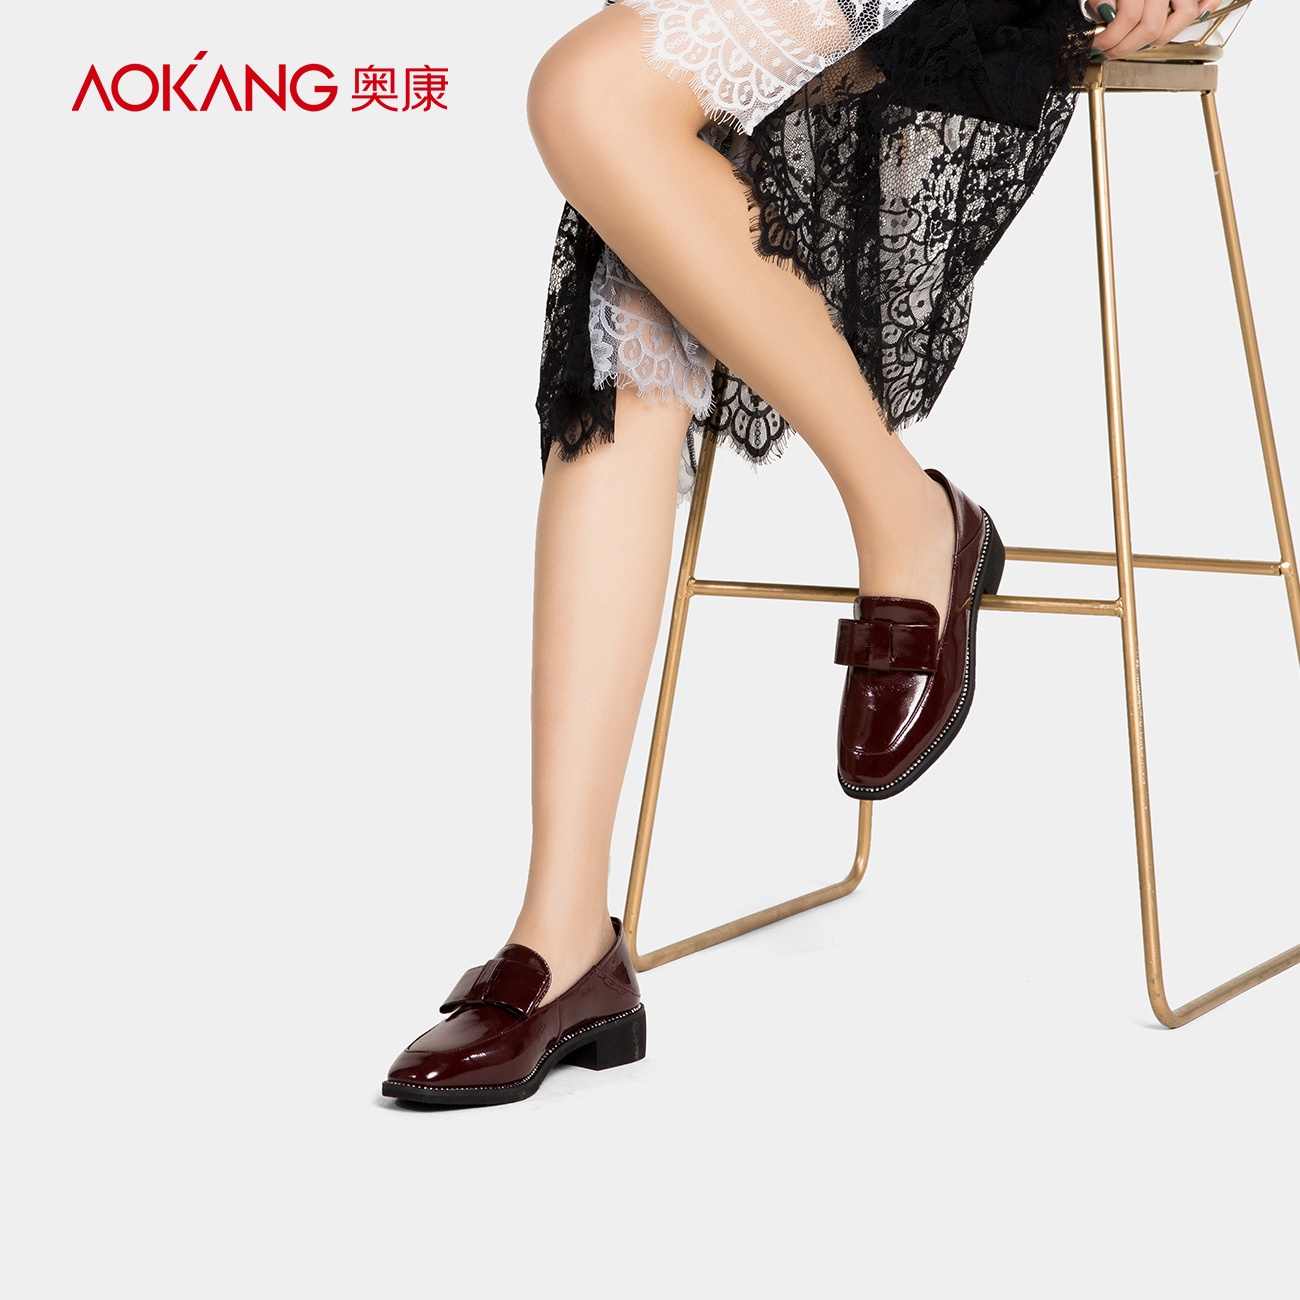 Aokang women's shoes 2018 autumn new products square head bright leather British wind single shoes women's fashion thick with trend women's shoes